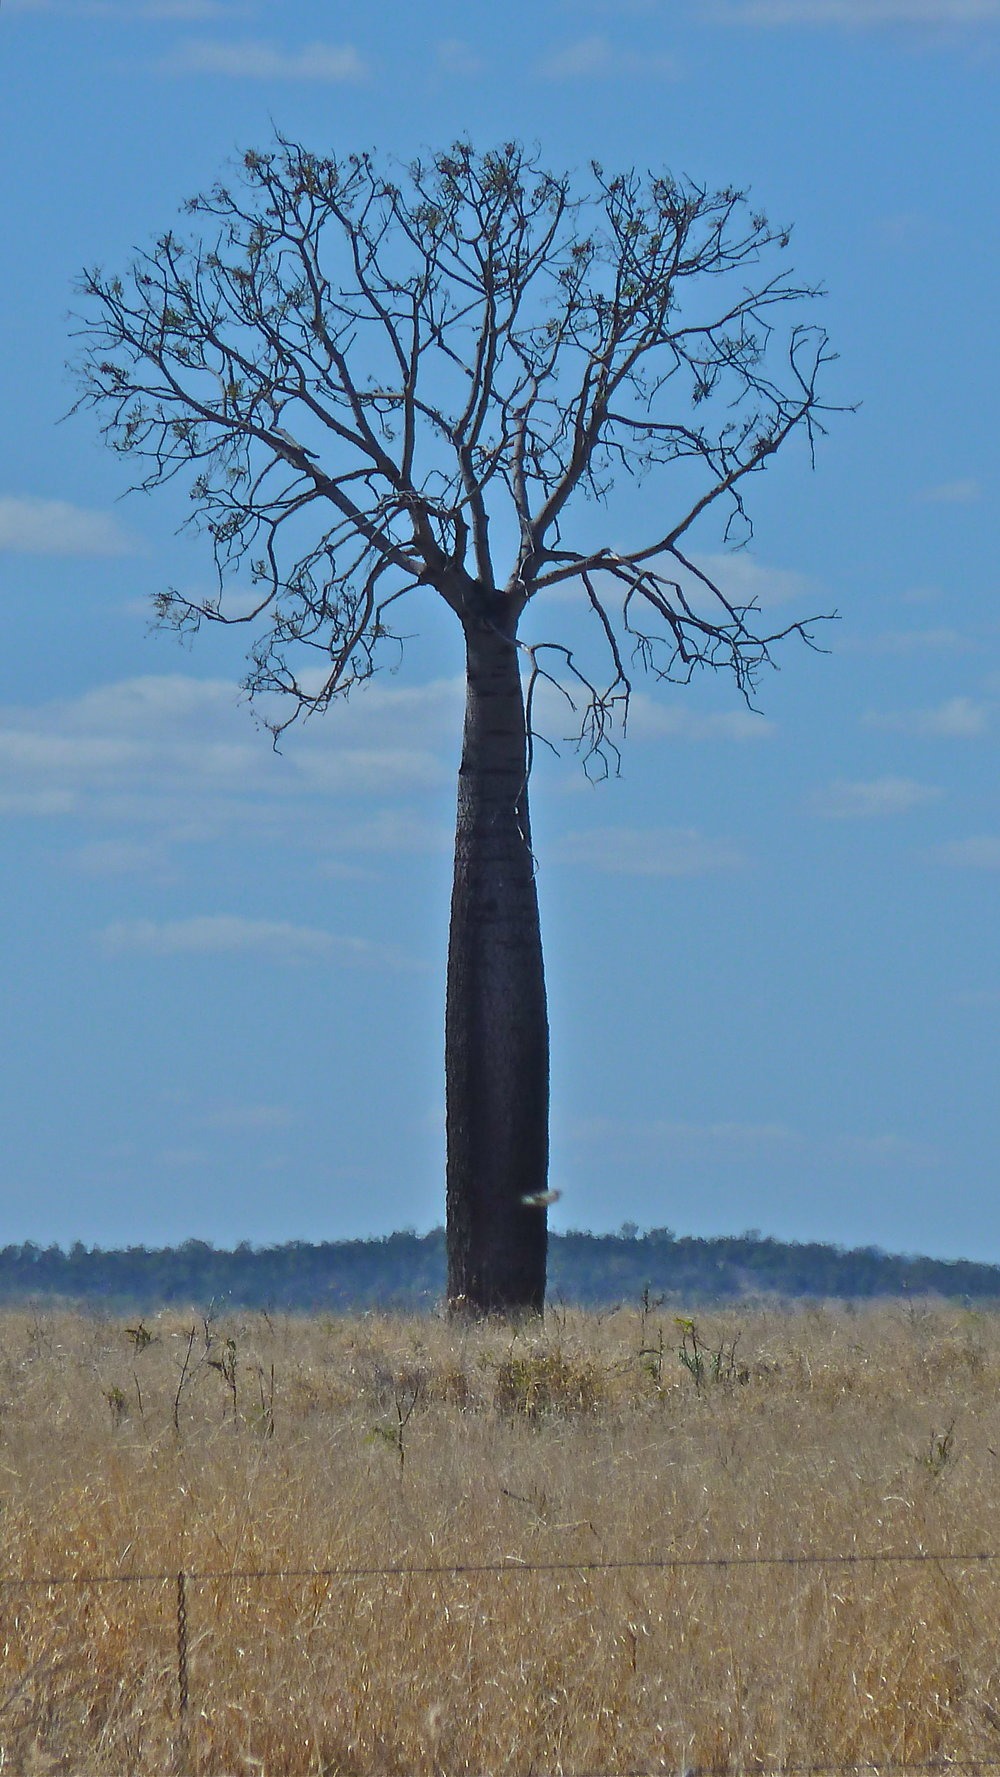 Queensland Bottle Tree, near Alpha, Central Queensland